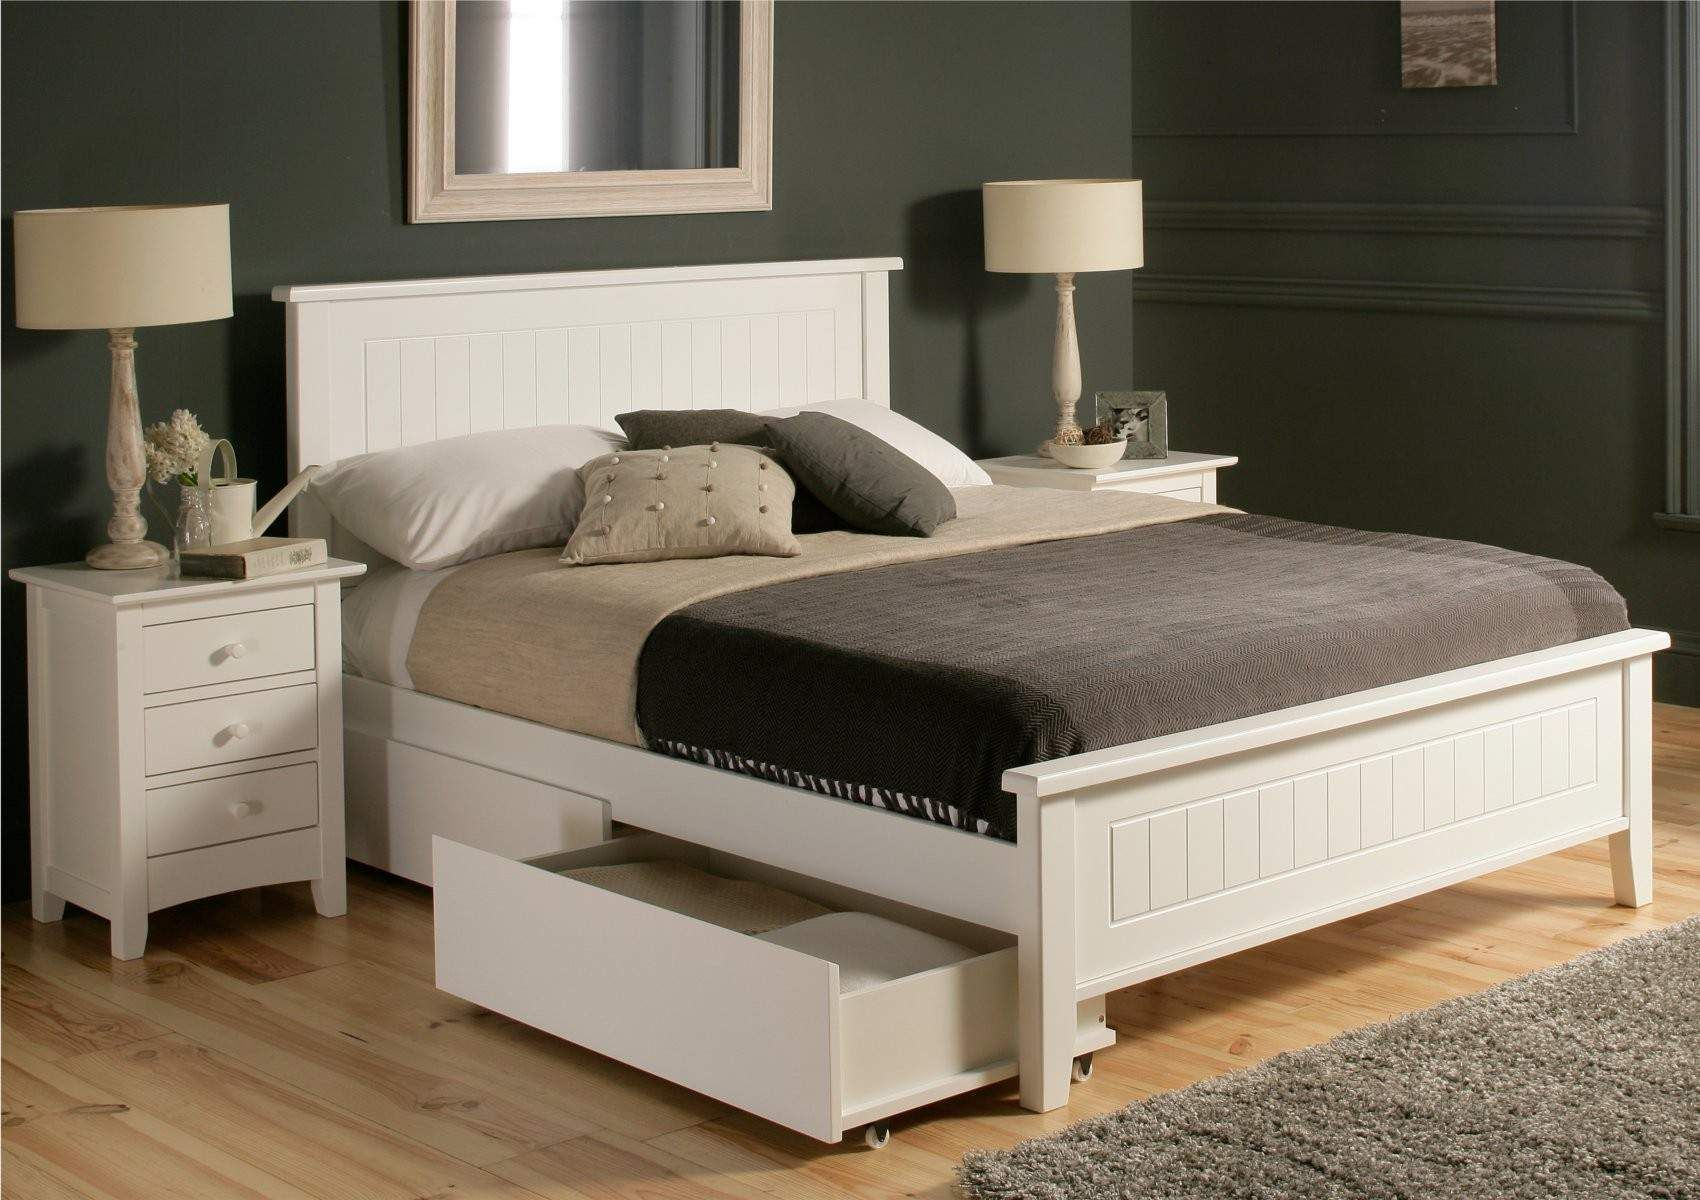 Wooden King Size Bed Frame With Drawers In 2020 White Bed Frame